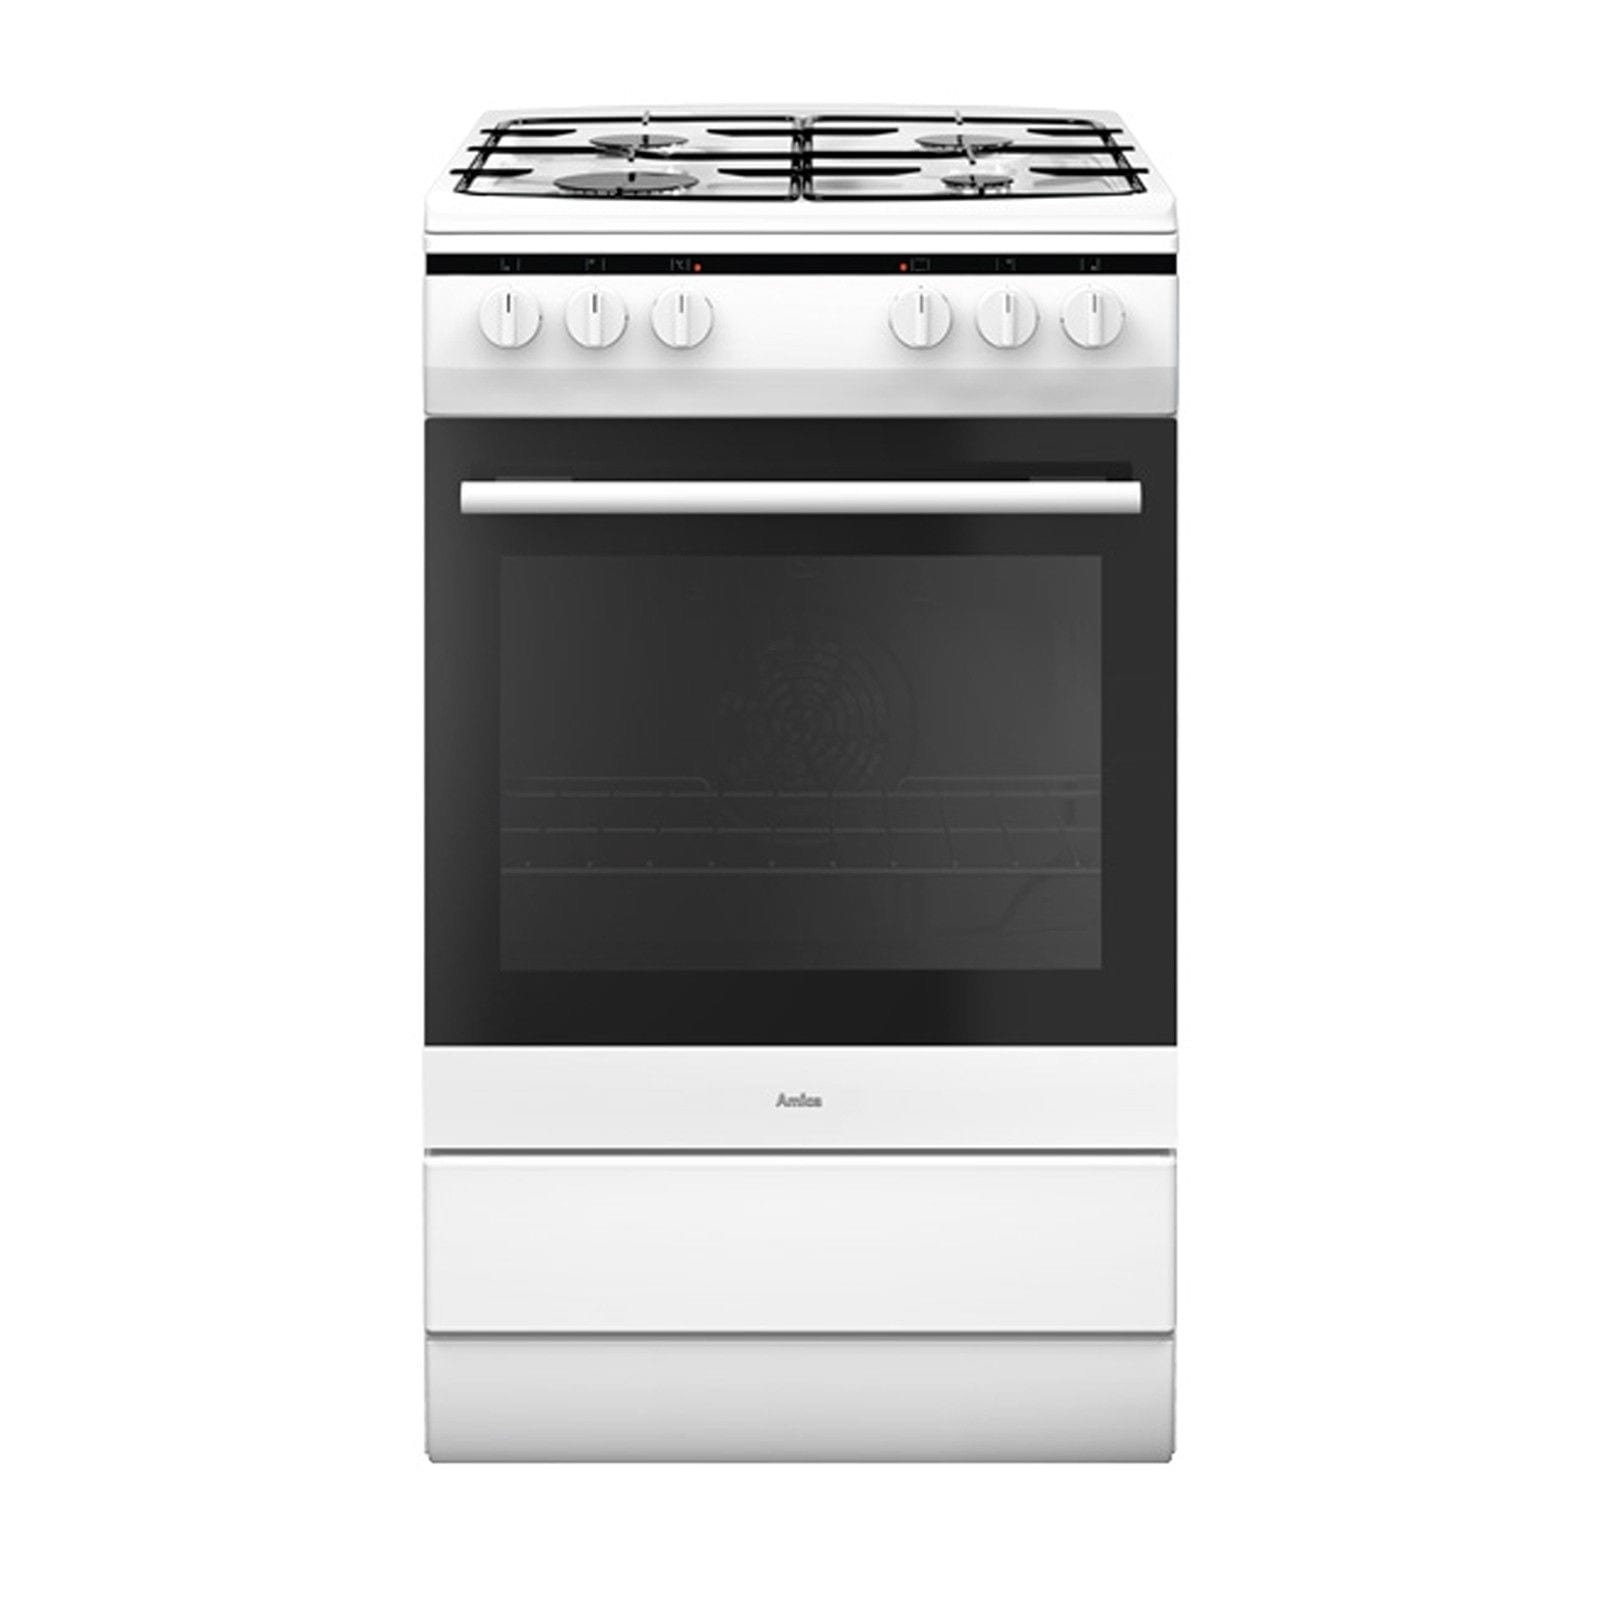 Amica 508gg5w Freestanding 50cm Single Cavity White Gas Cooker Oven